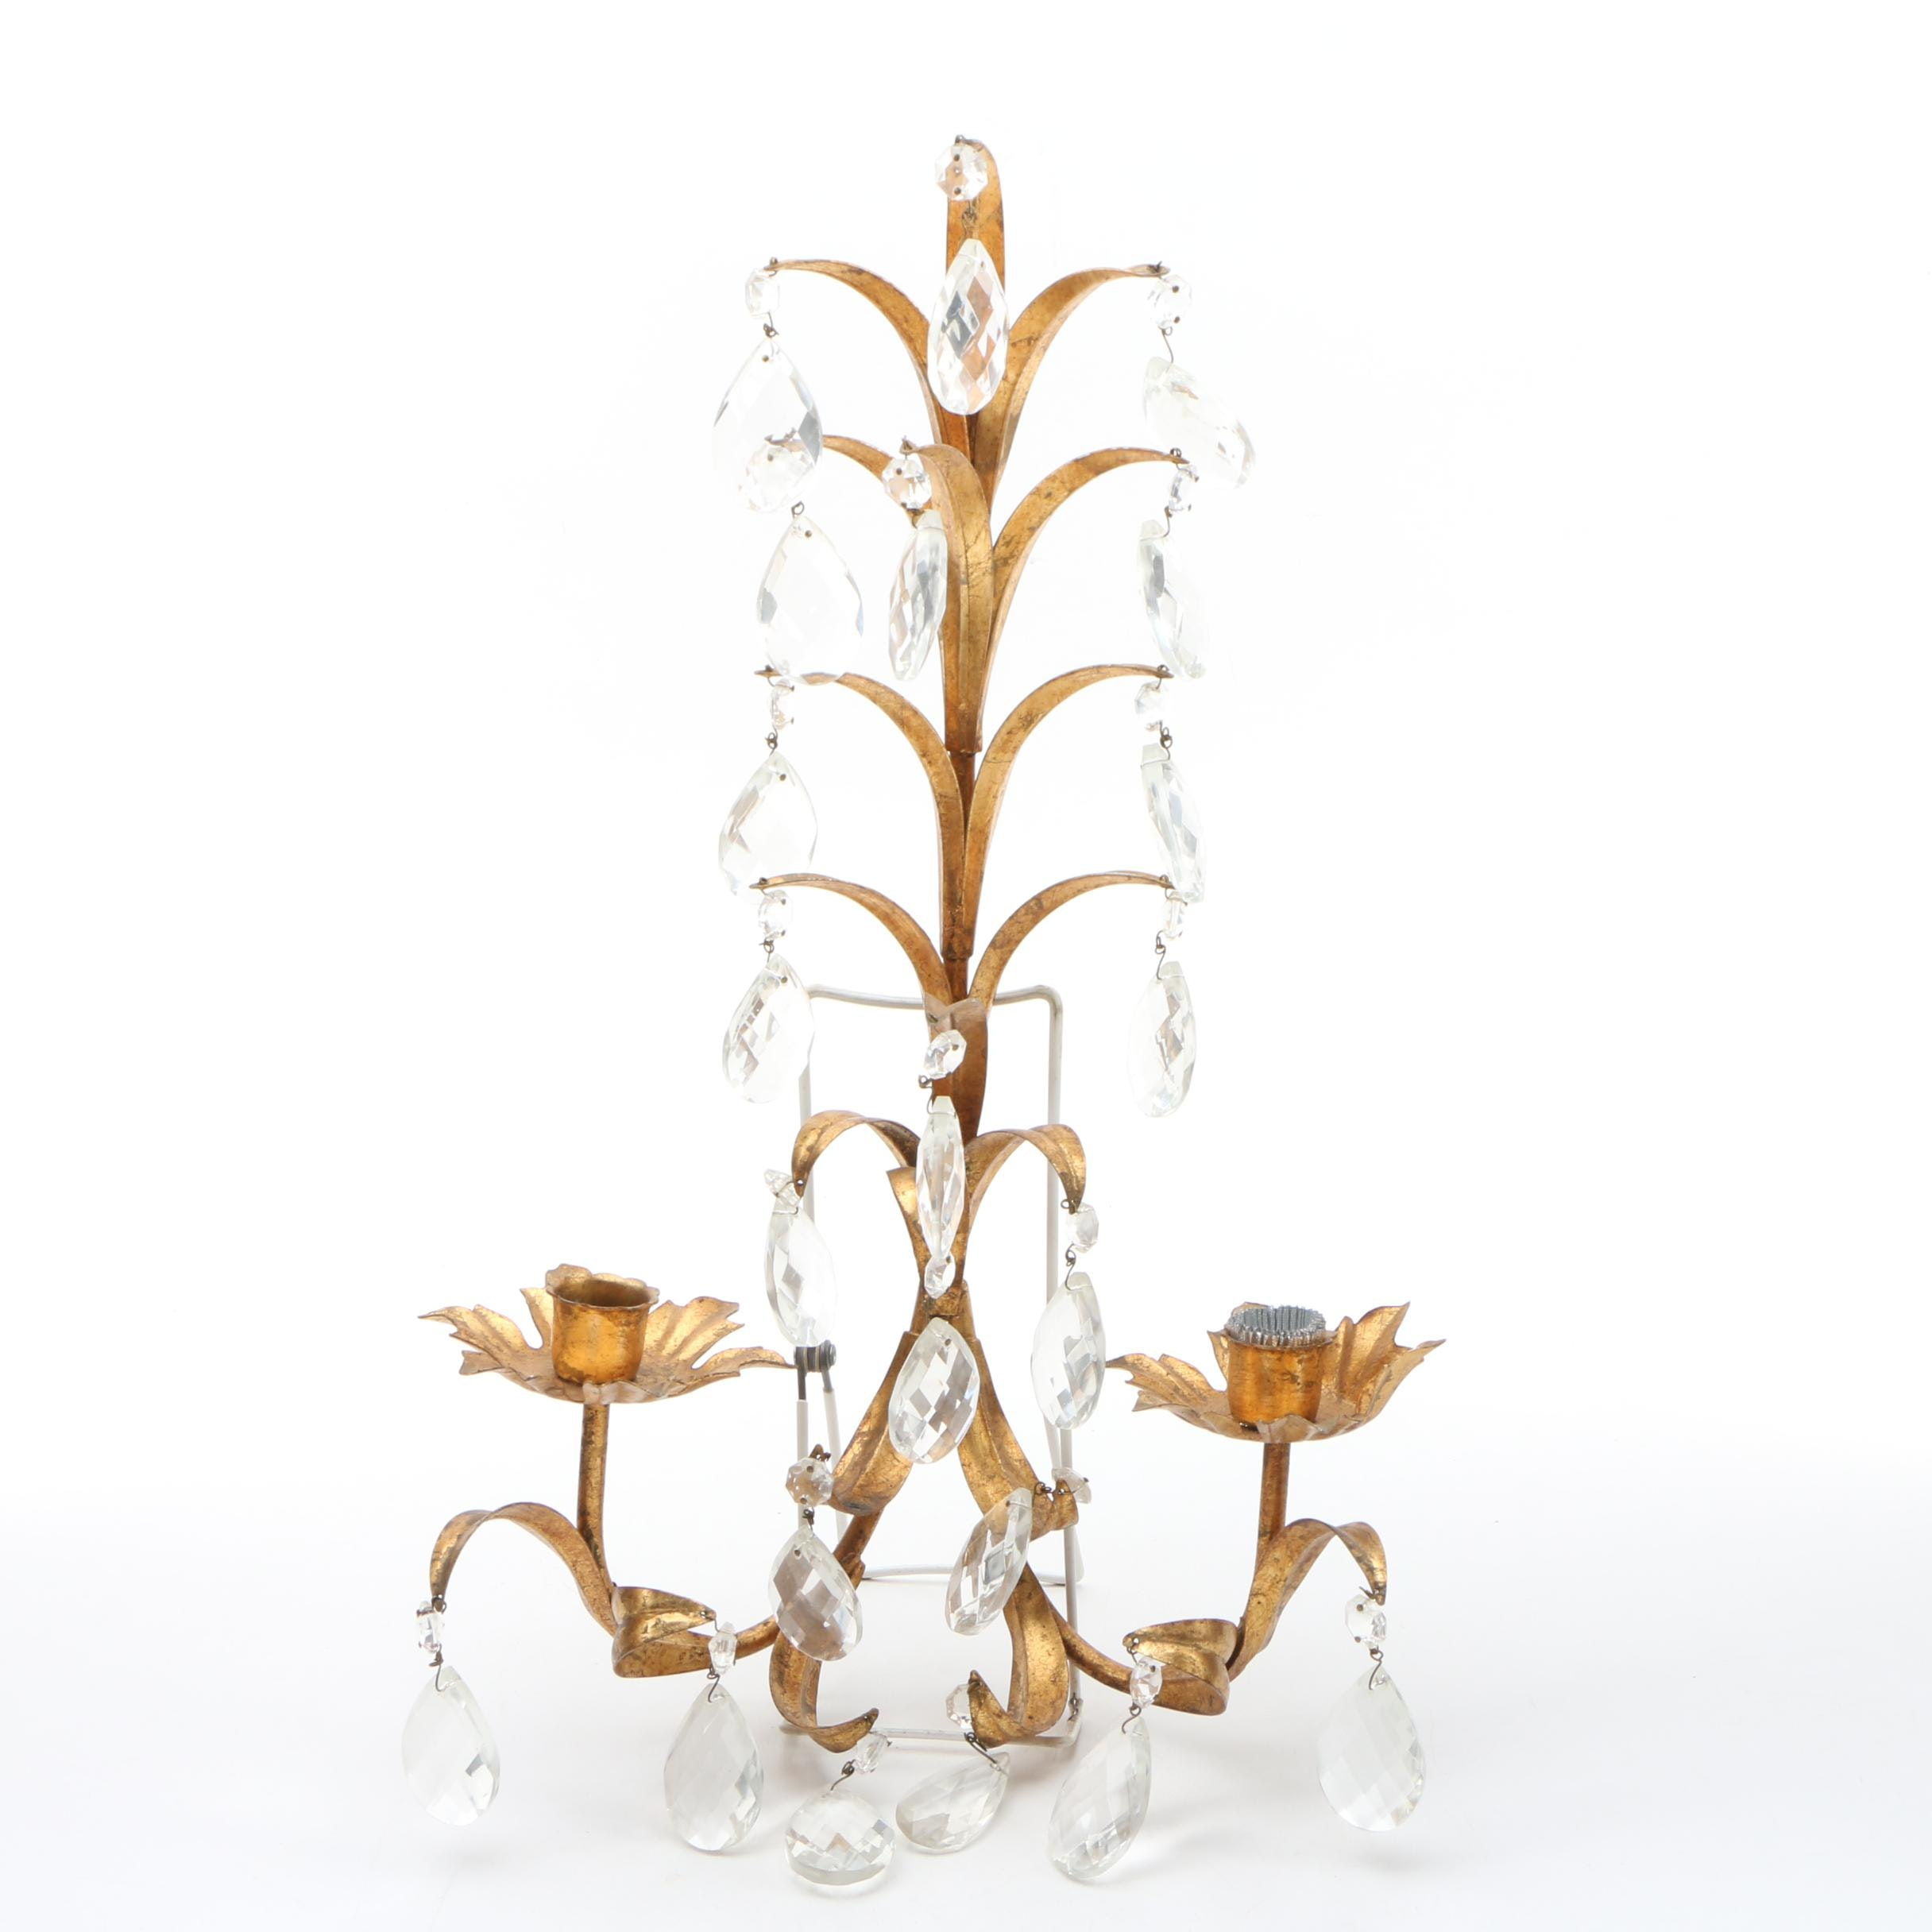 Tole Candle Sconce with Glass Drops, Mid to Late 20th Century